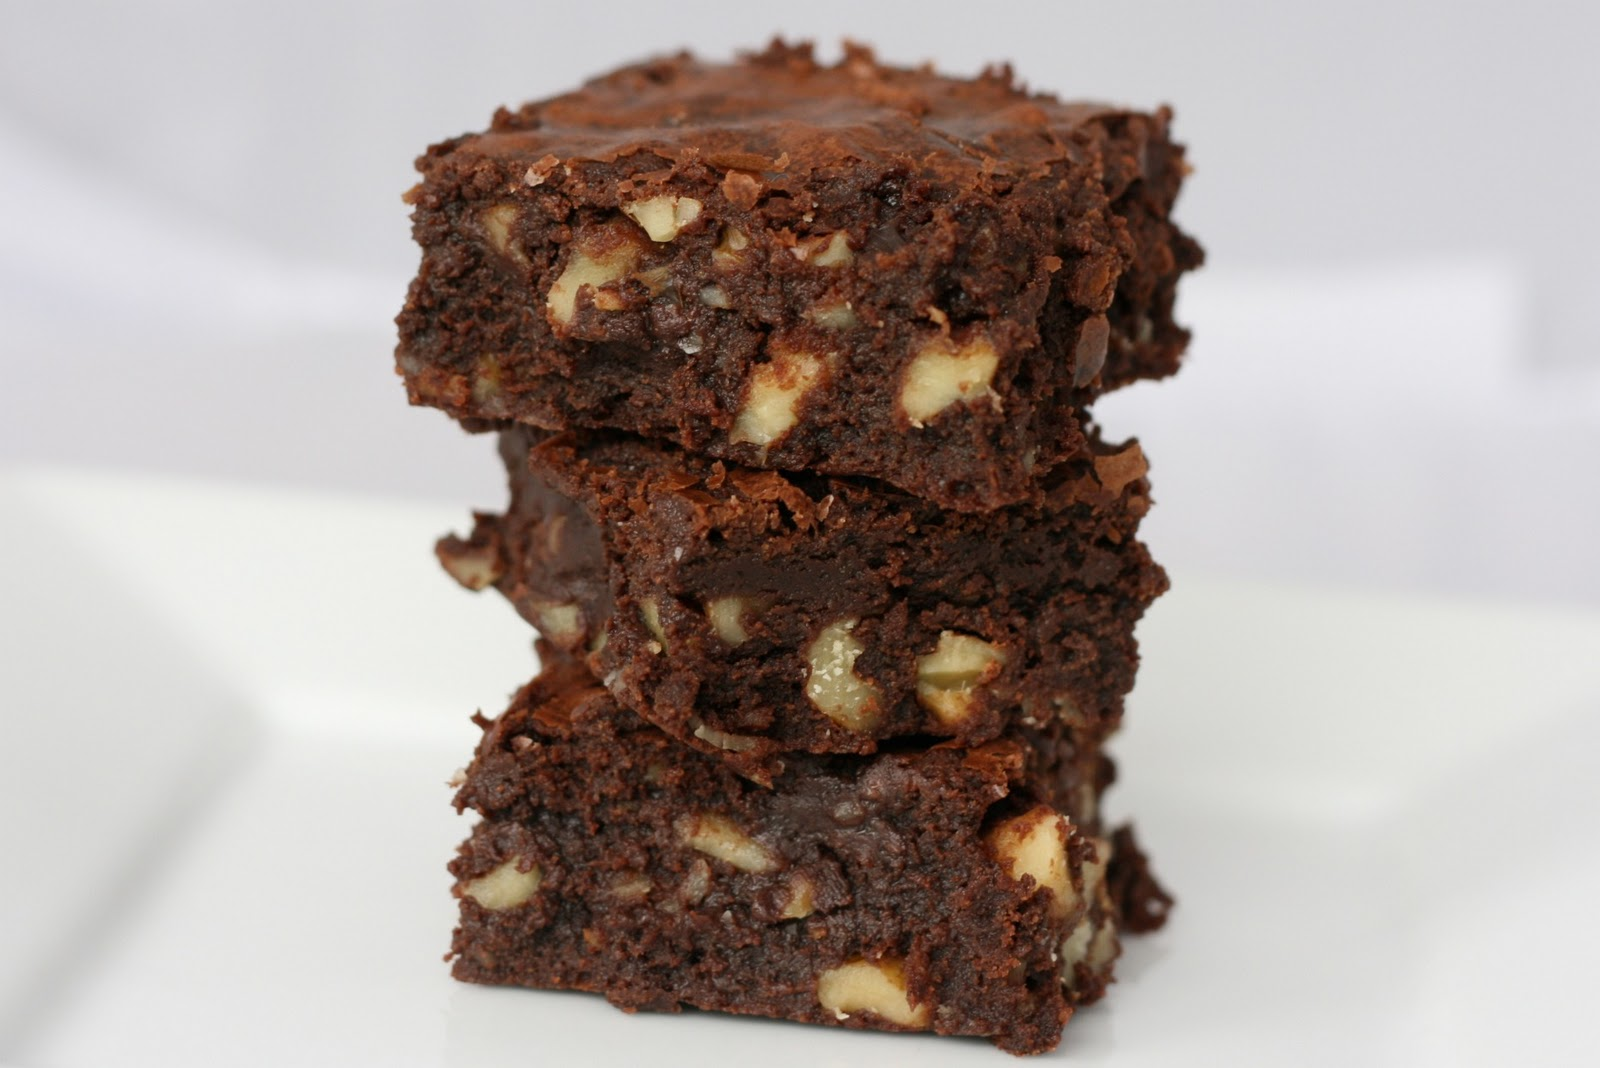 Above My Raisins: Cocoa Brownies with Browned Butter and Walnuts